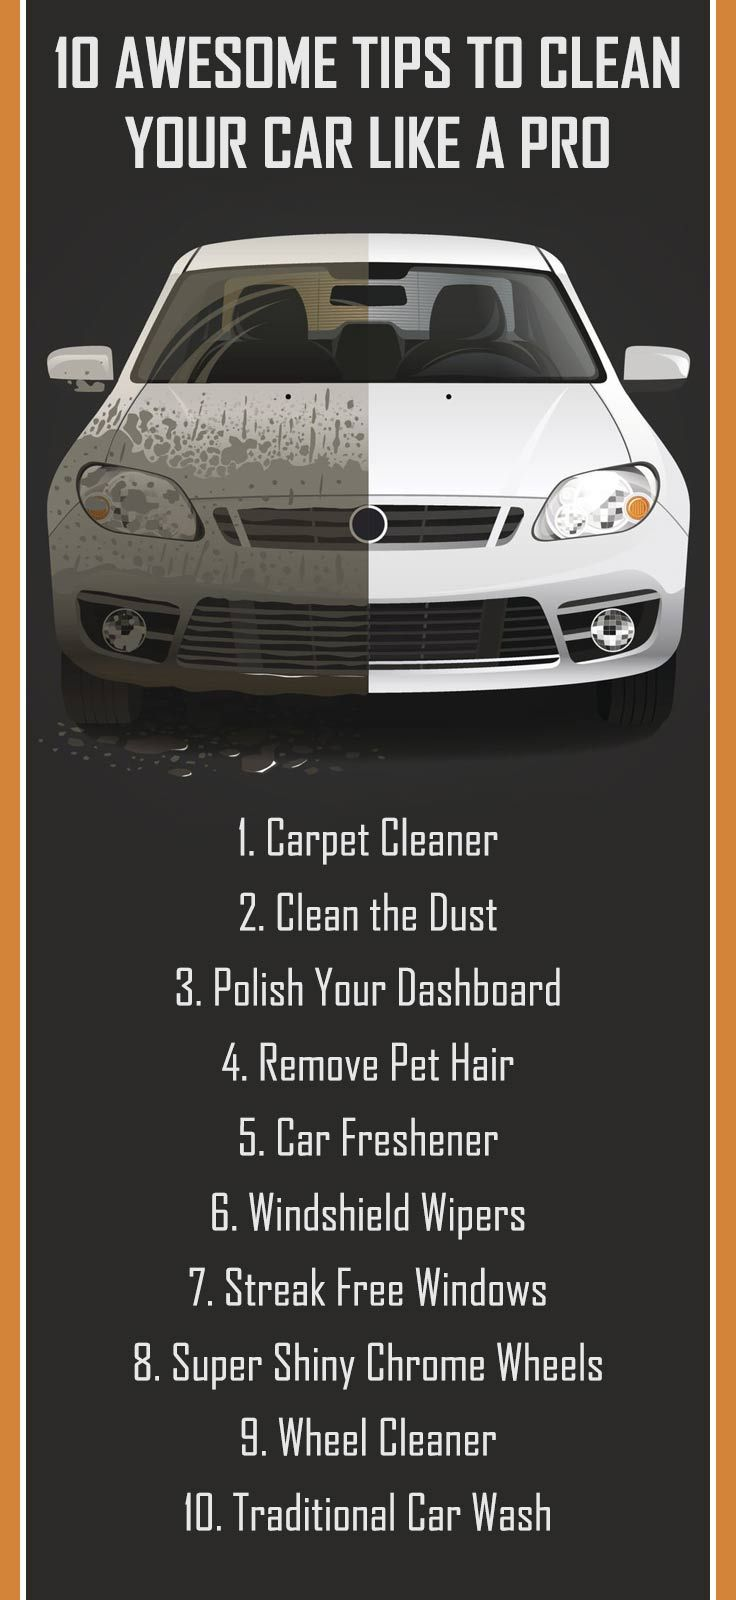 10 Awesome Tips to Clean Your Car Like a Pro Clean your